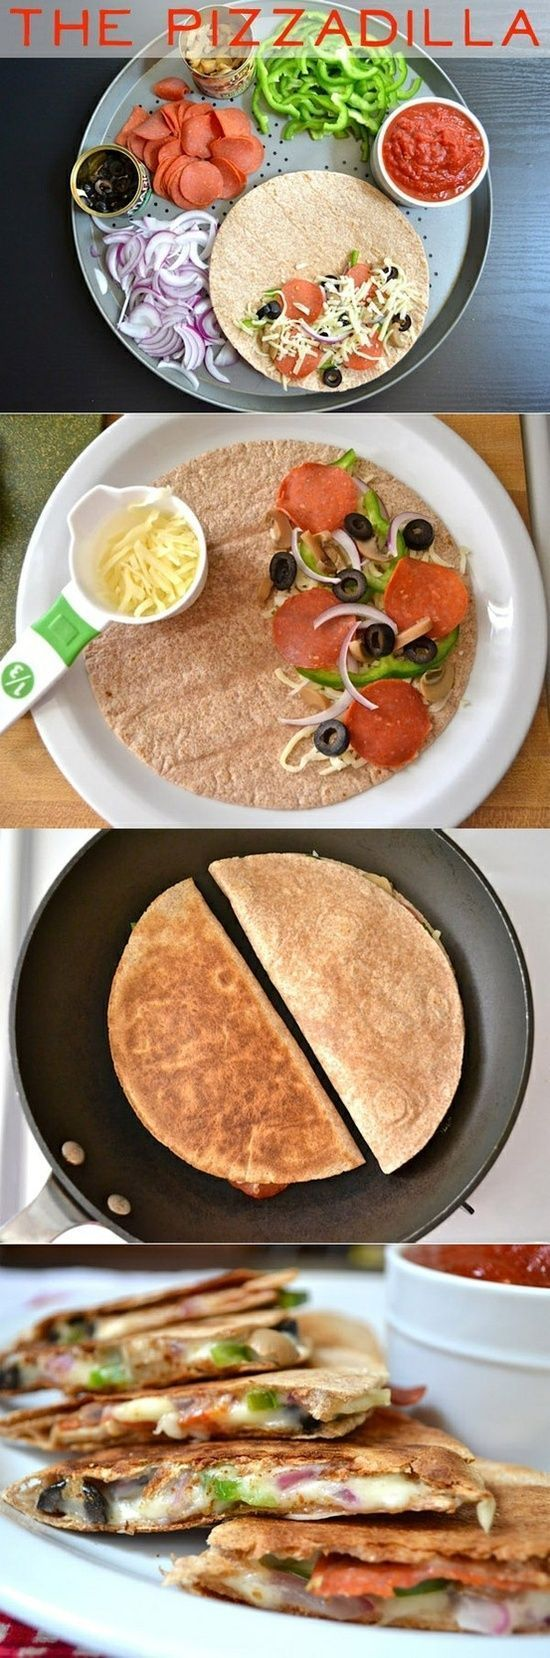 low carb tortilla, fat free cheese or no cheese, this could work for a pizza craving